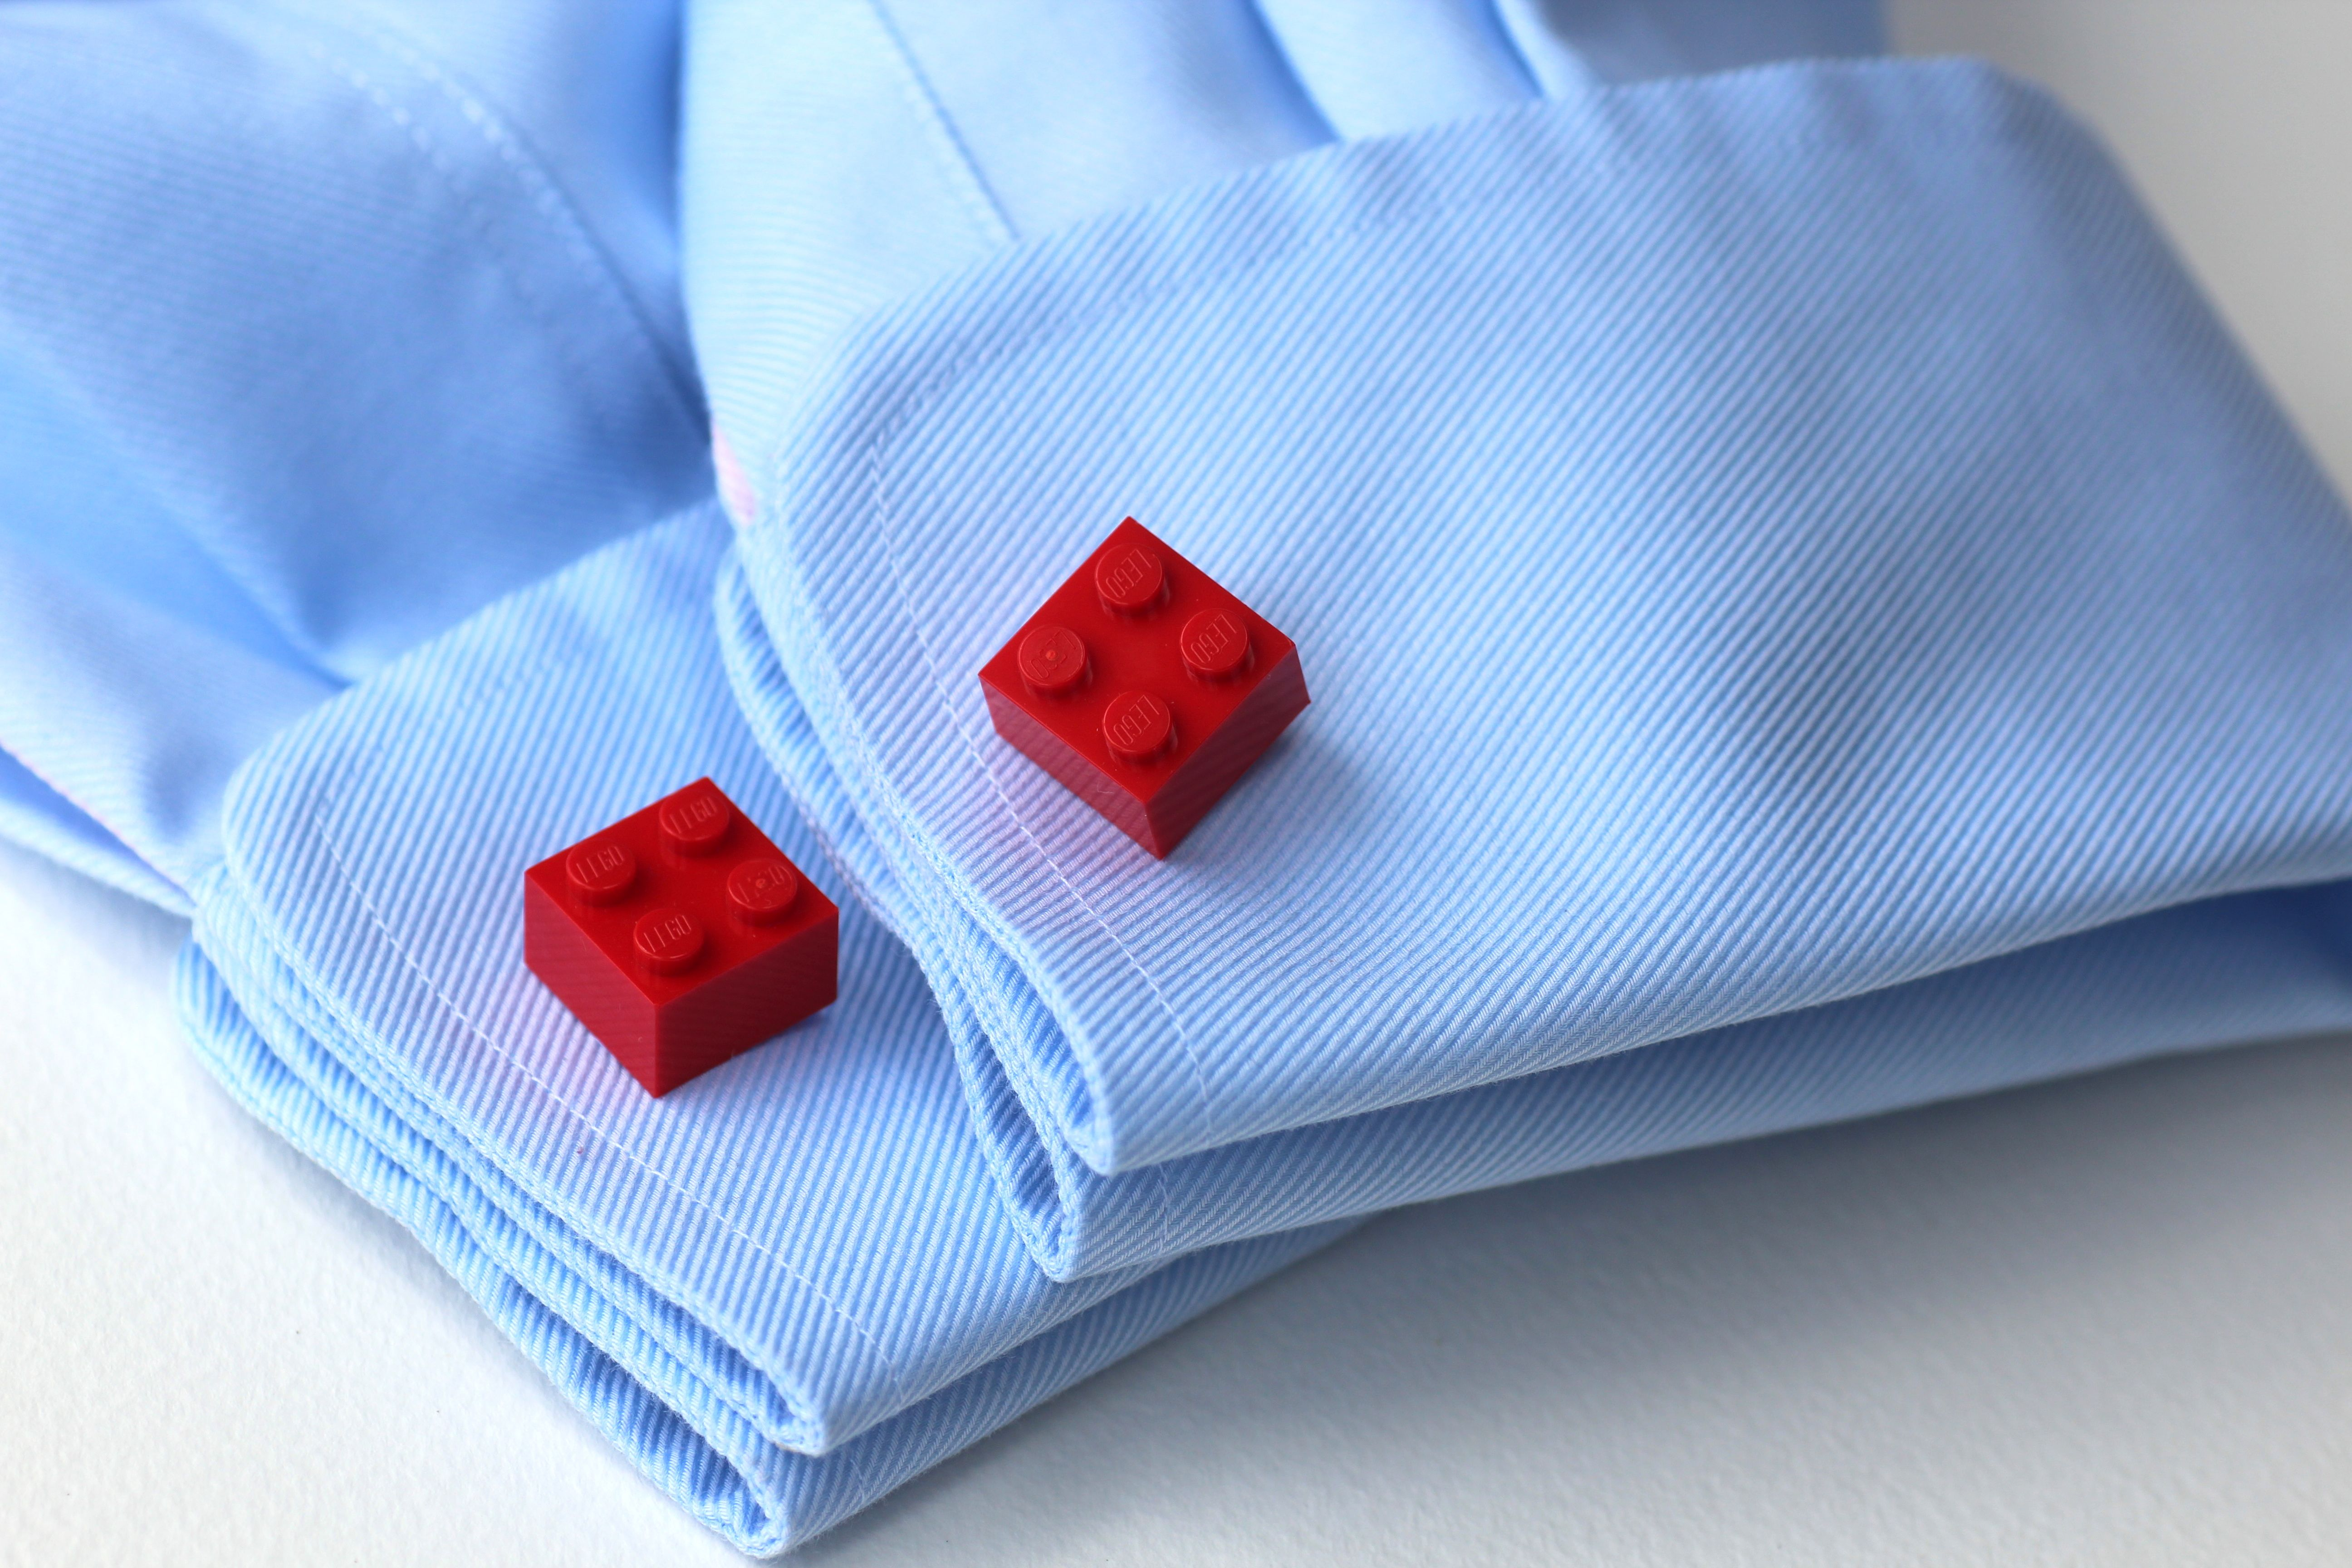 lego cufflinks close up